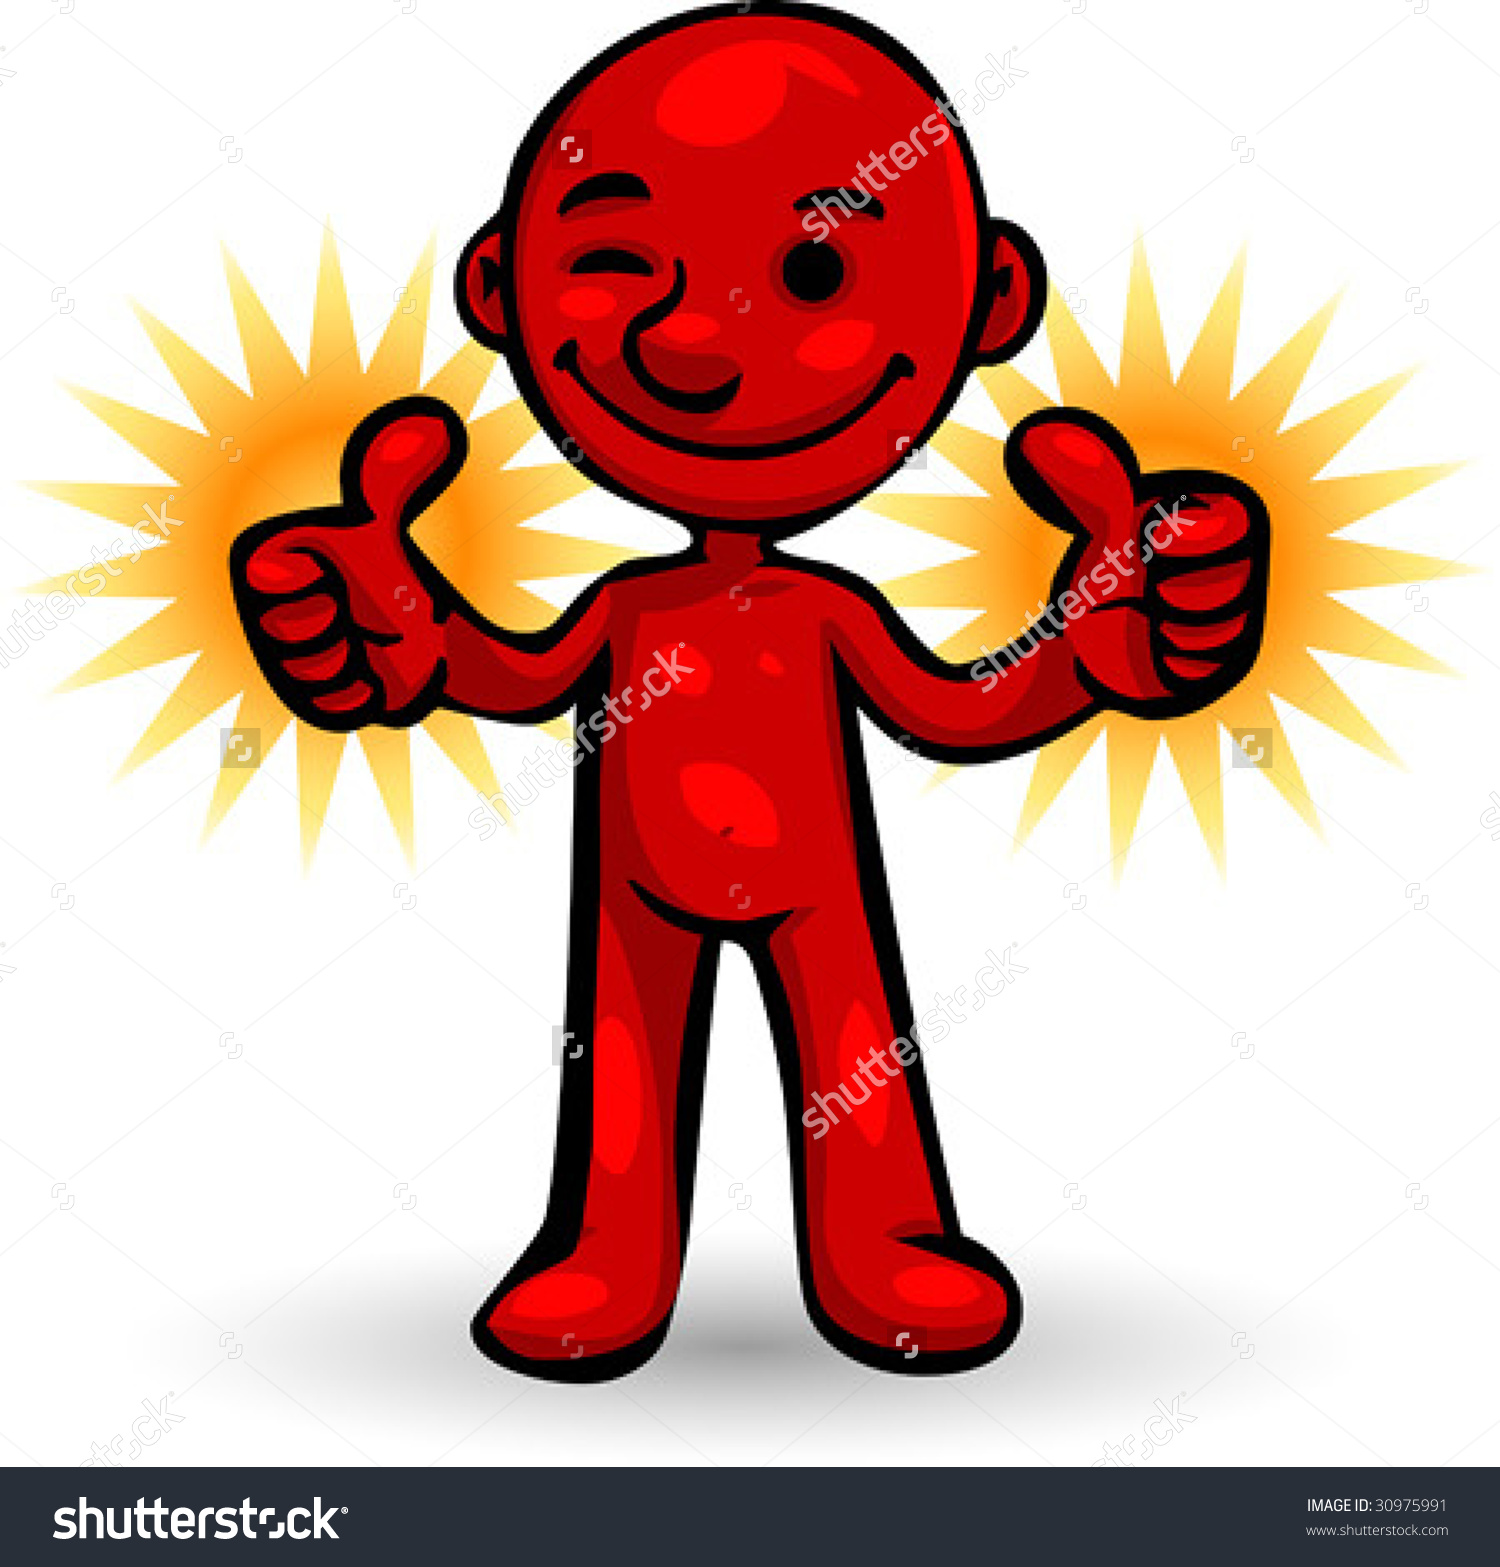 Person giving thumbs up clipart black and white stock Vector Clip Art Illustration Little Red Stock Vector 30975991 ... black and white stock